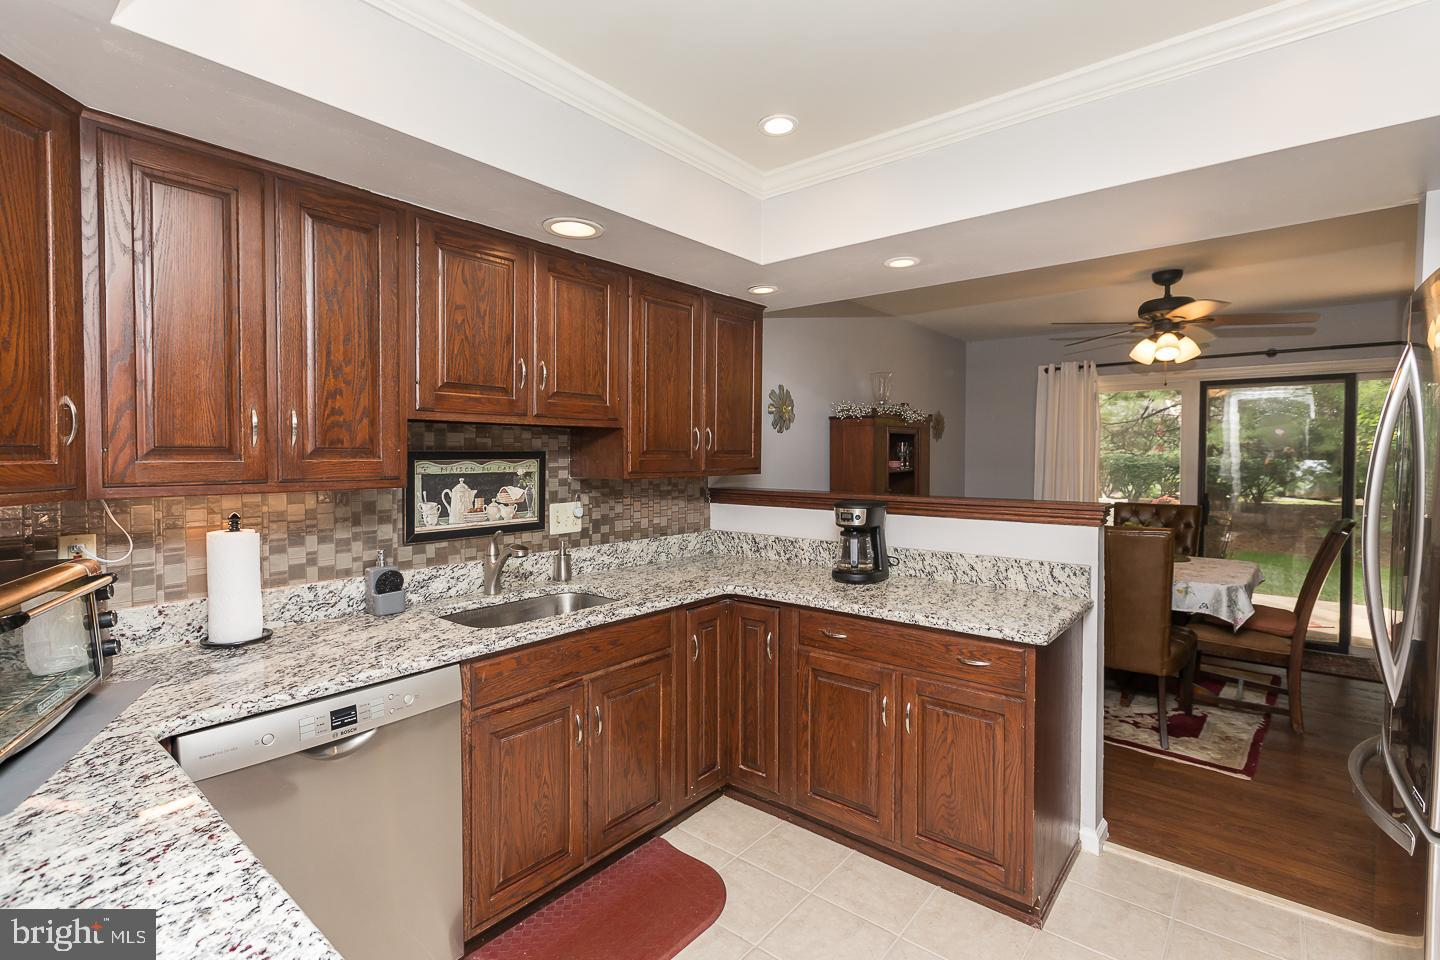 819 Jefferson Way West Chester , PA 19380